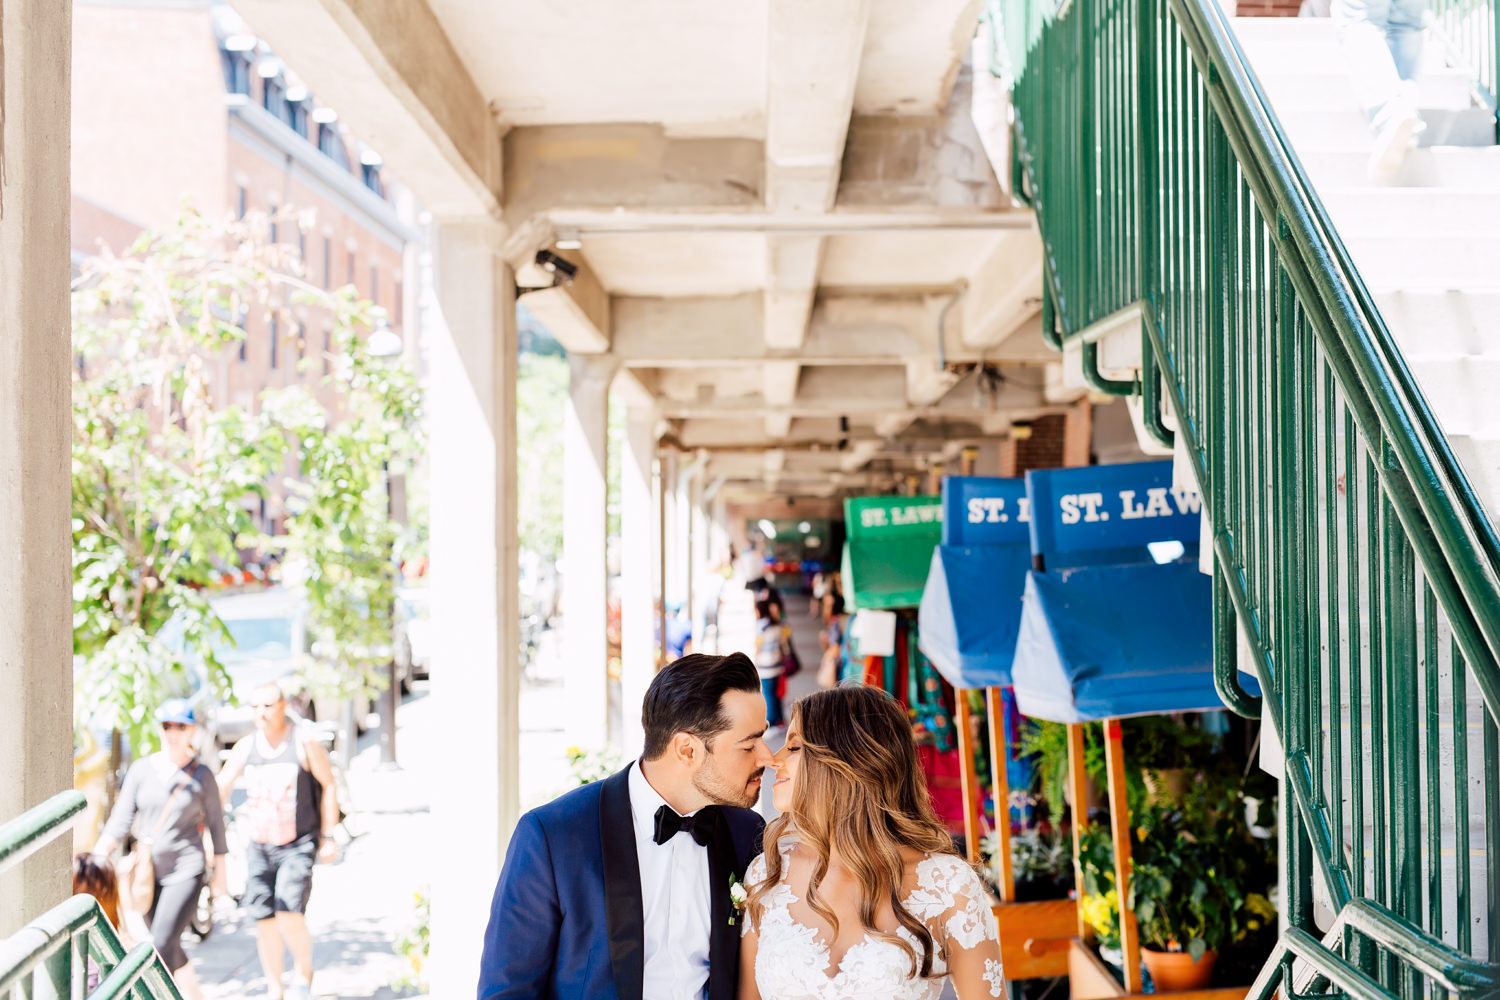 st. Lawrence market wedding